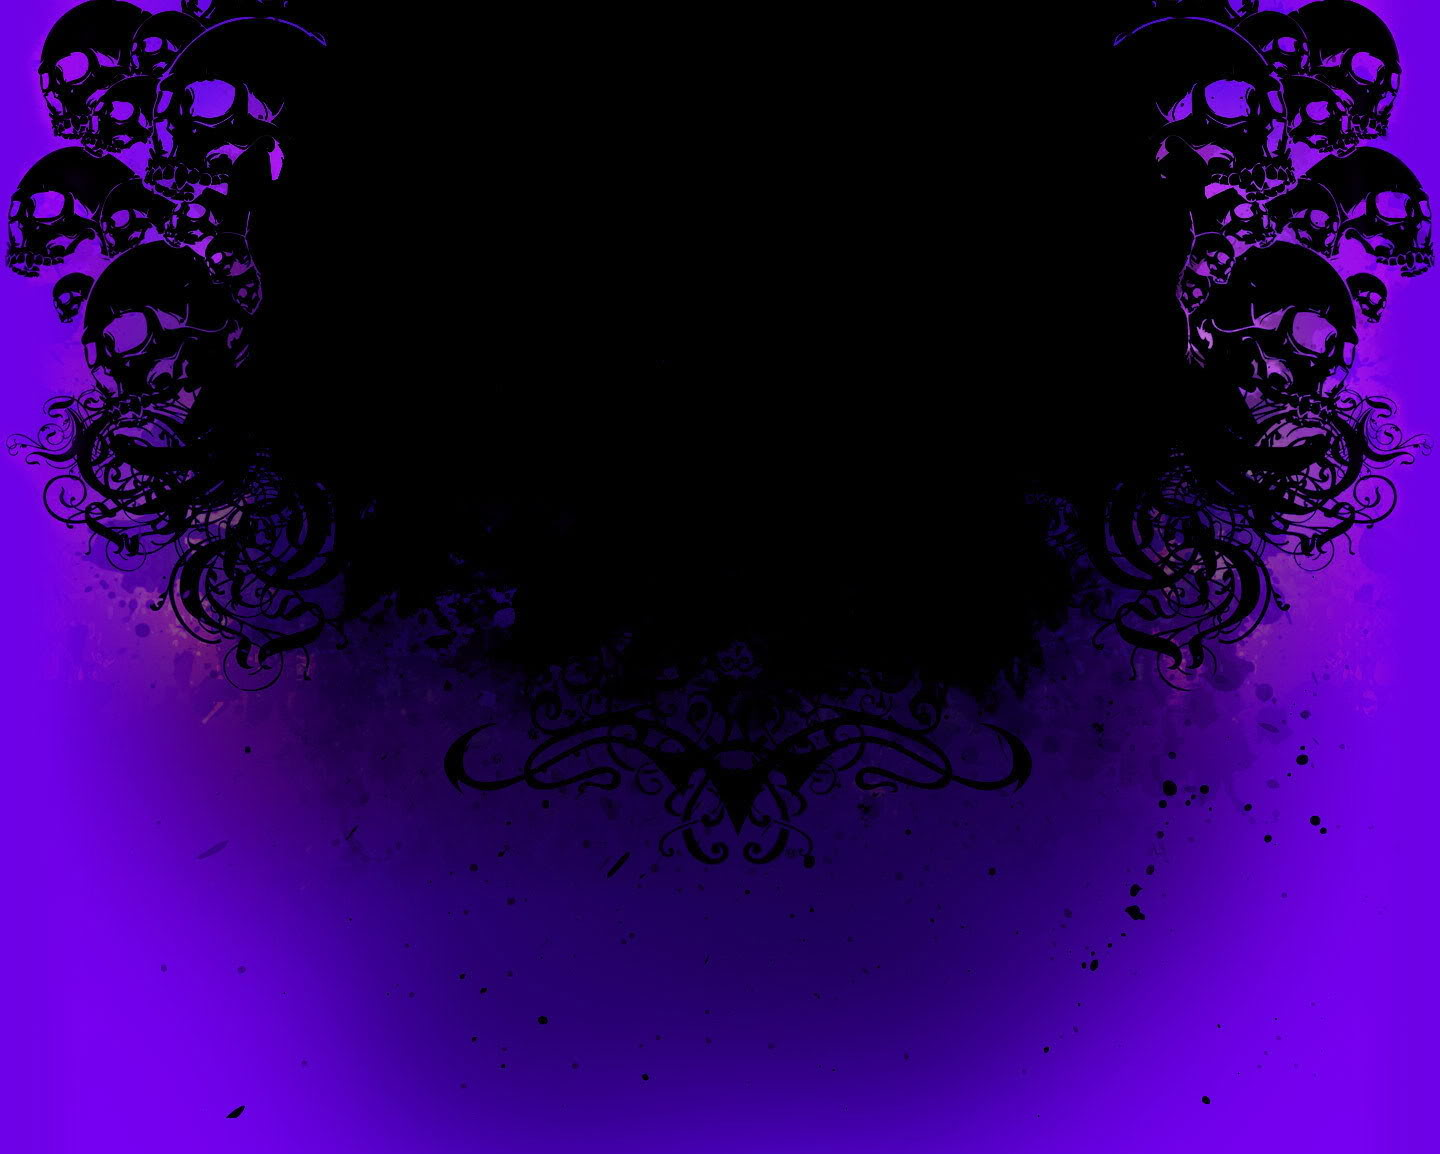 Purple Skull Wallpaper - WallpaperSafari